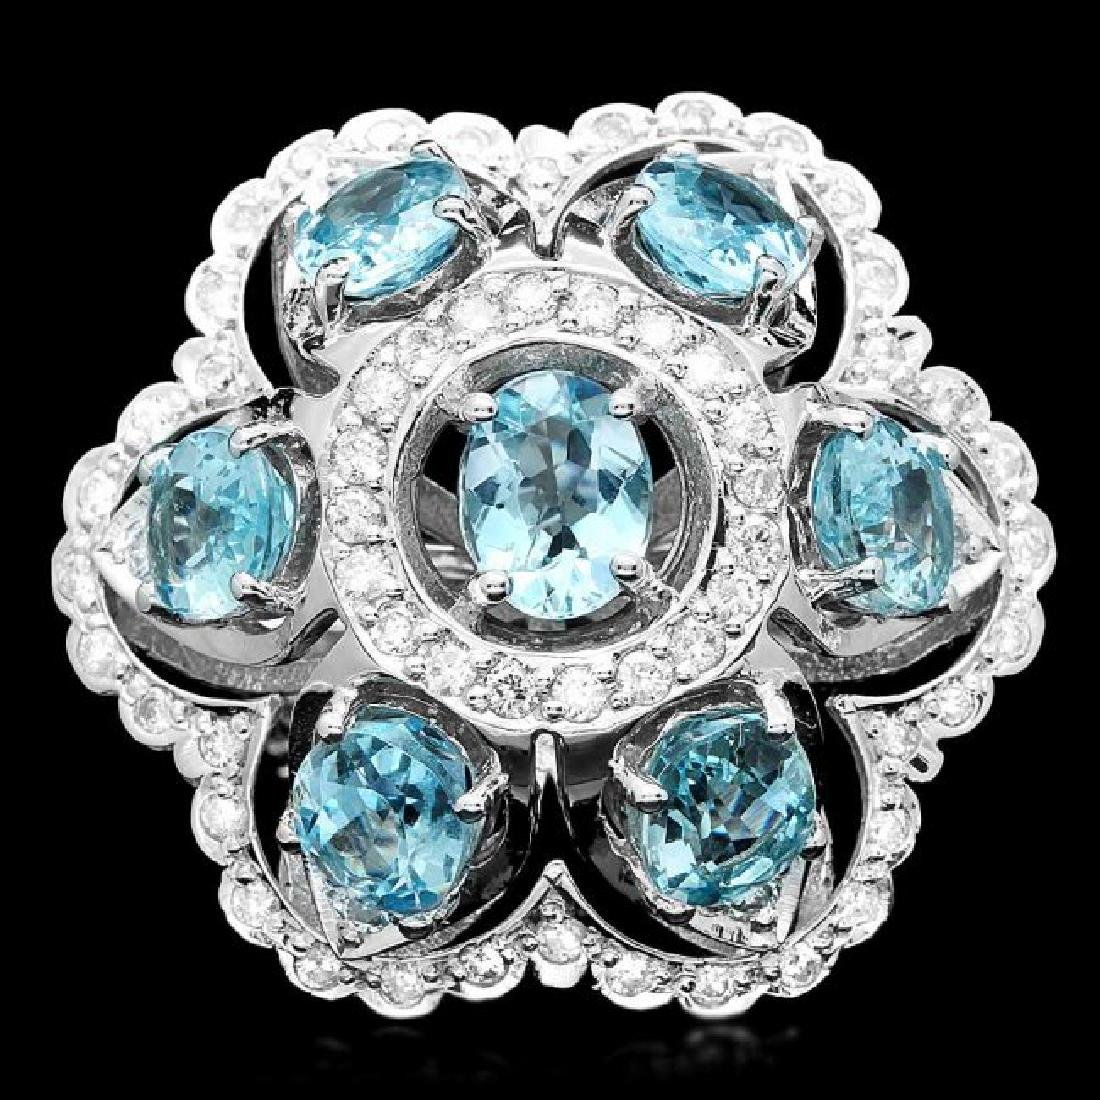 14k Gold 8.00ct Aquamarine 1.35ct Diamond Ring